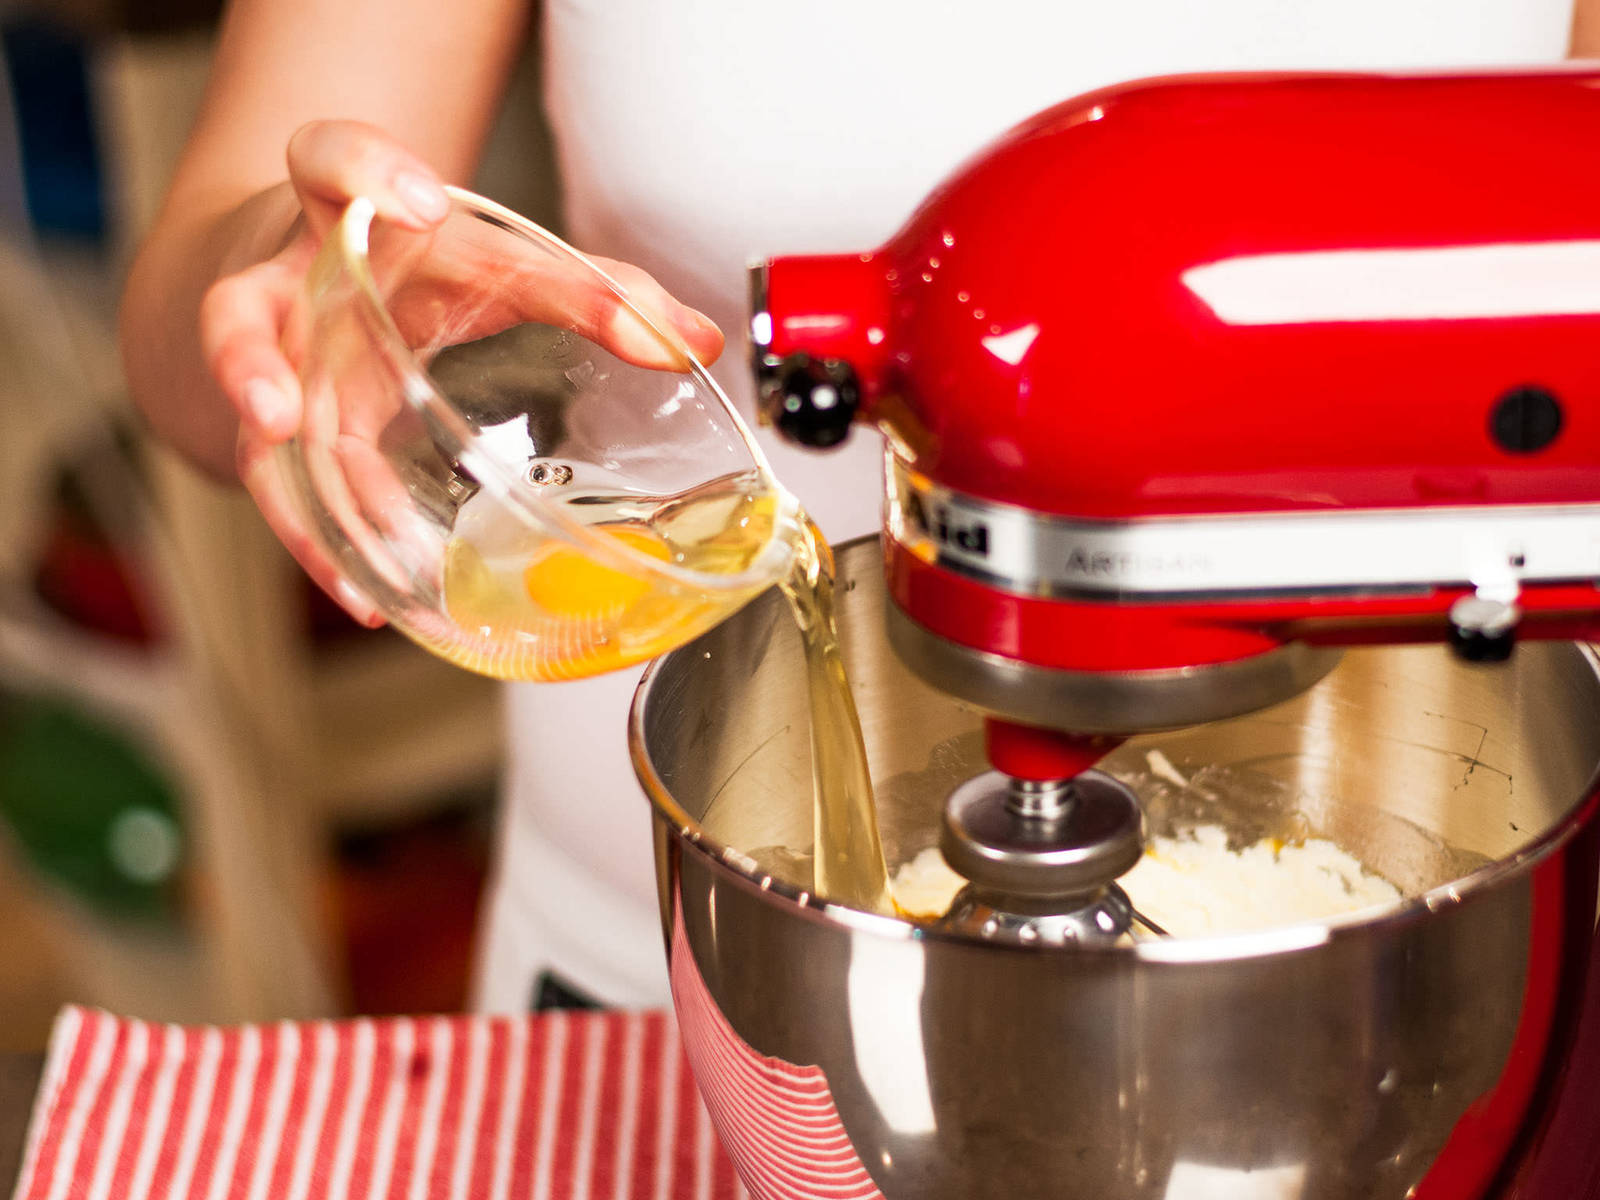 Then, whisk in eggs one by one until fully incorporated.